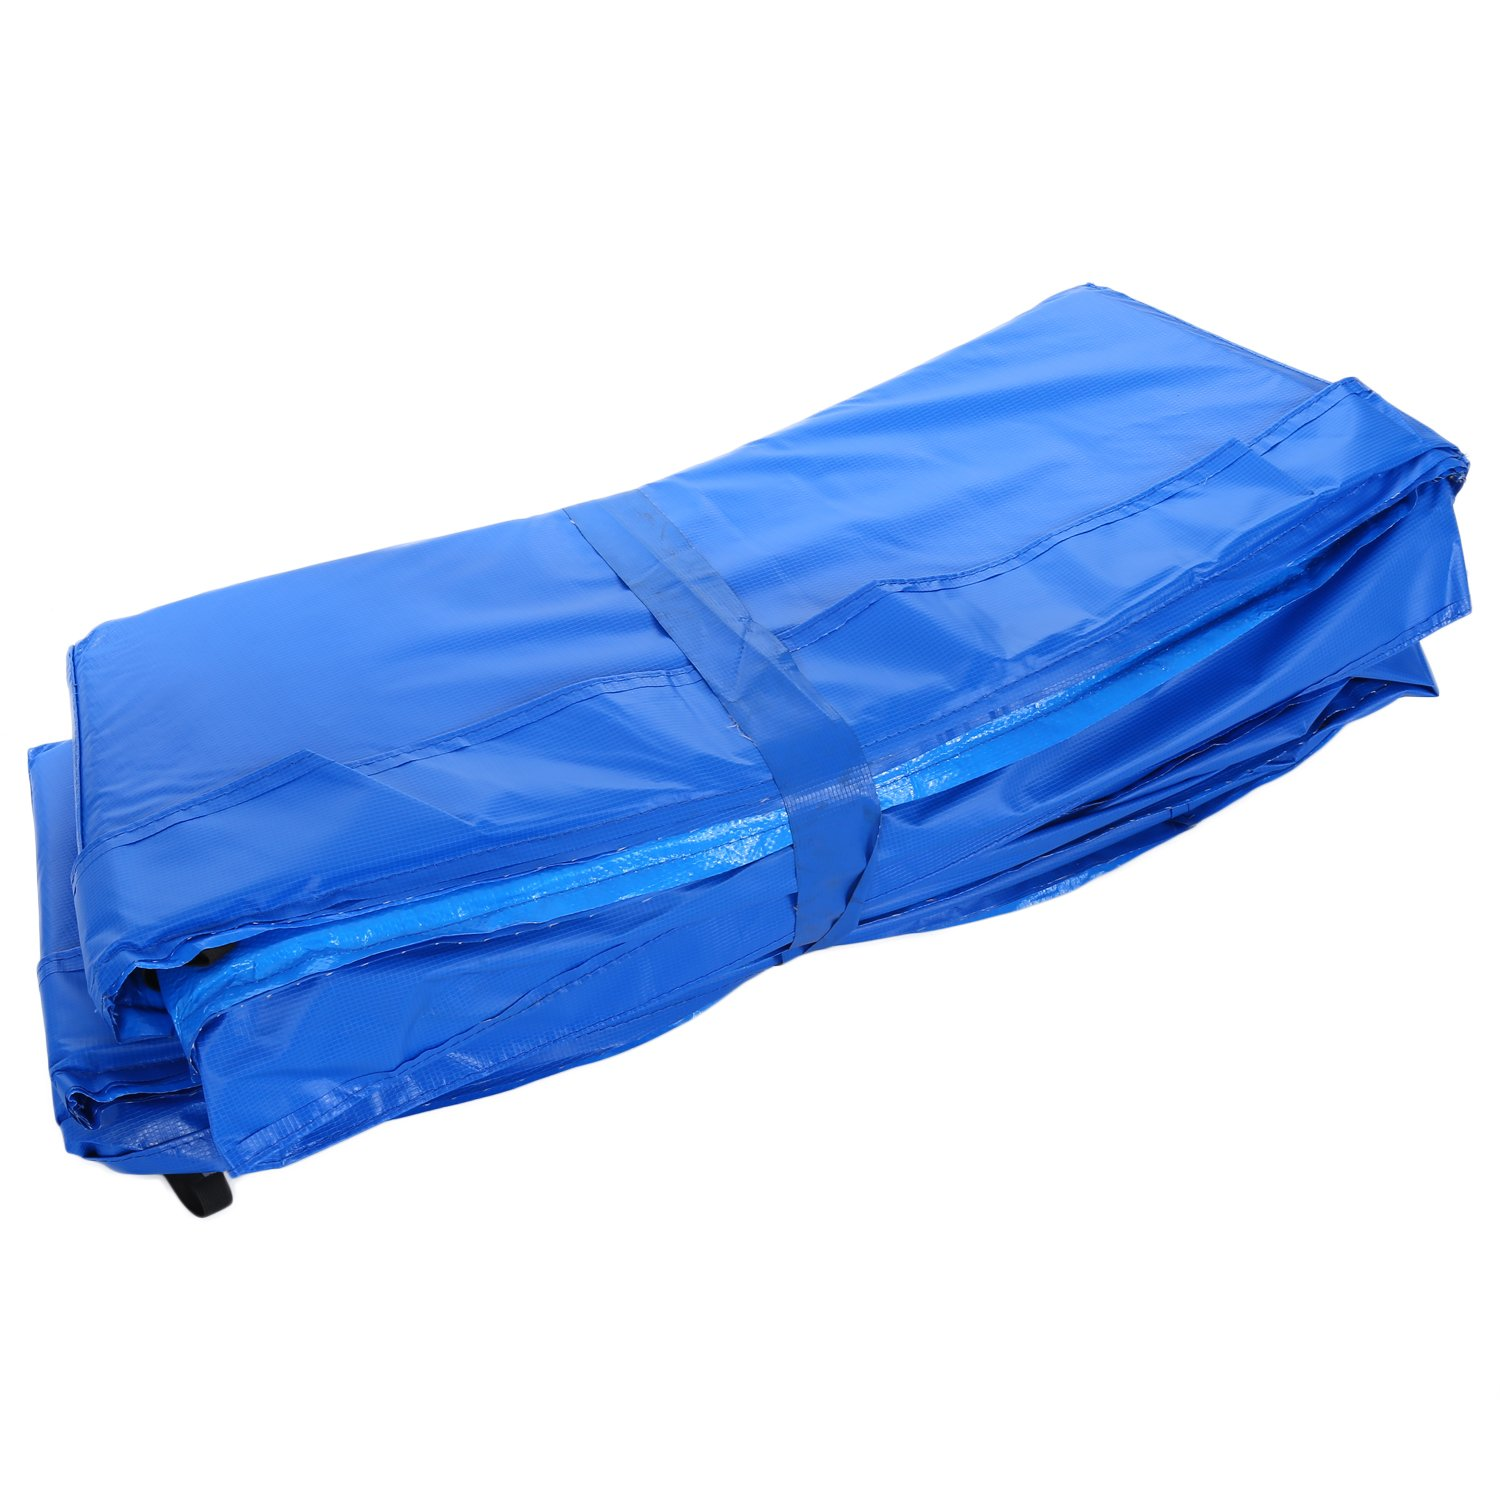 15 14 12 10 Ft Replacement Trampoline Surround PVC Pad Foam Safety Spring Cover Padding Pads (Blue, 15 Ft) by Zafuar Sports (Image #5)